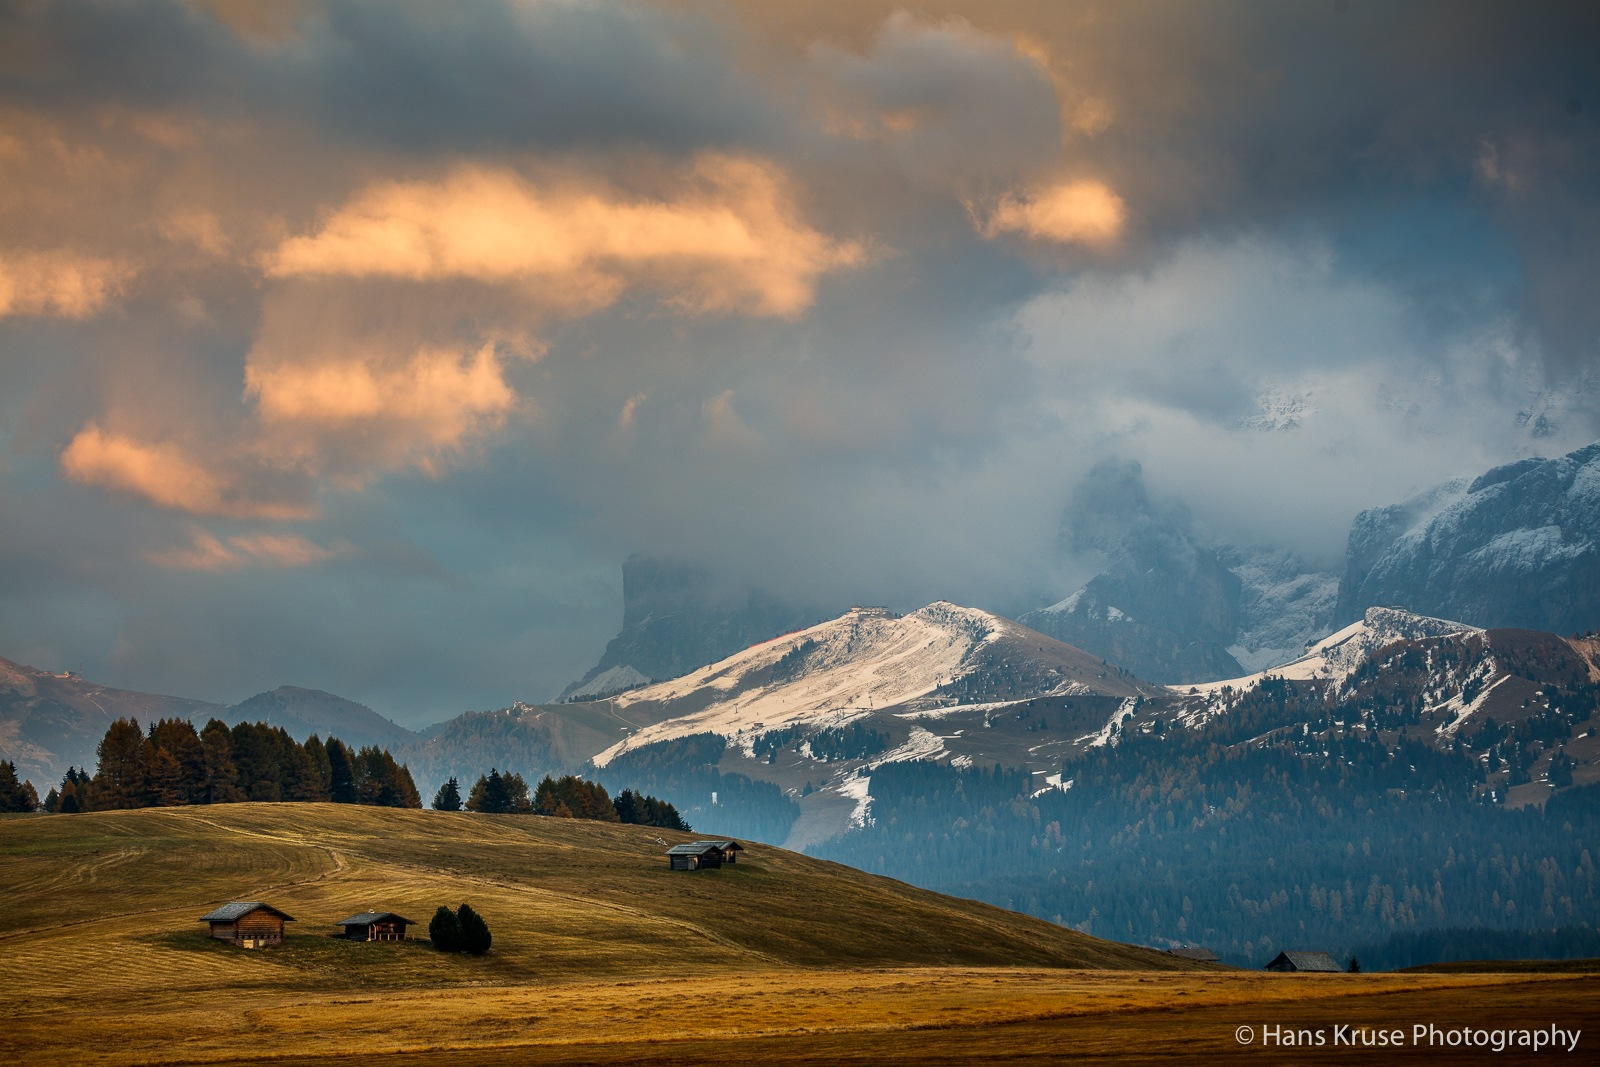 Sunset in Alpe di Siusi by Hans Kruse